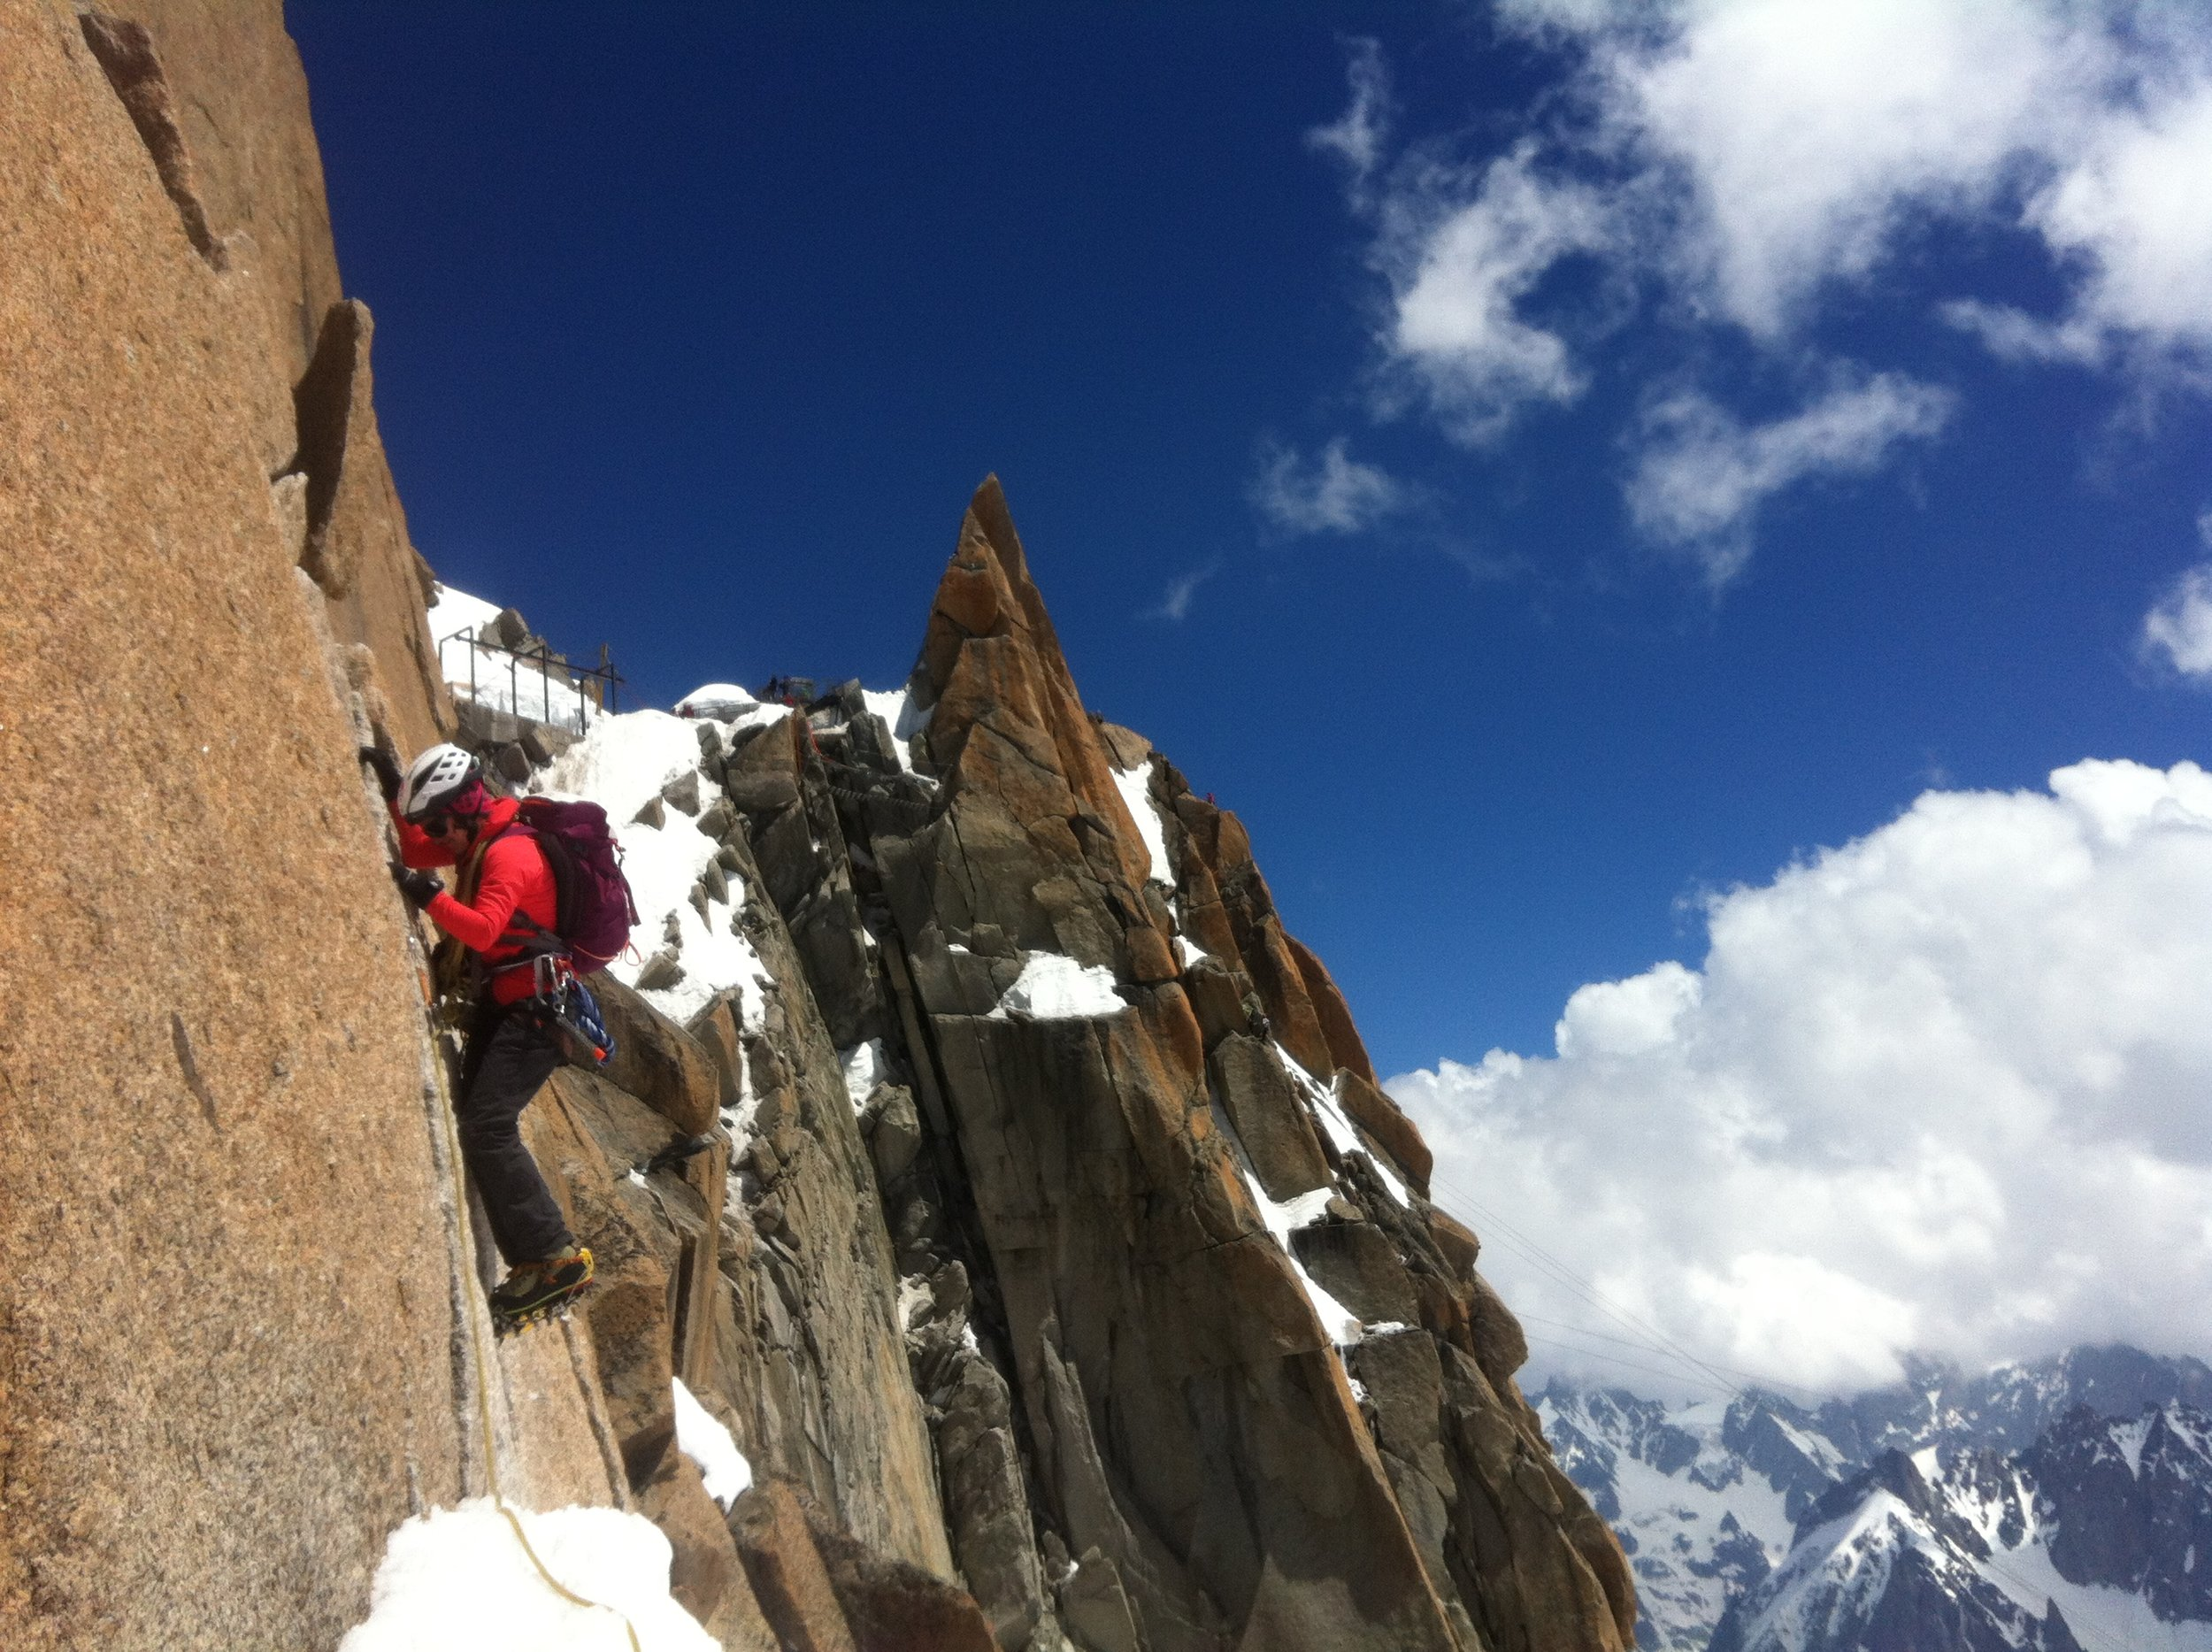 Heather Swift showing me how to climb rock in crampons on the Cosmique Arete